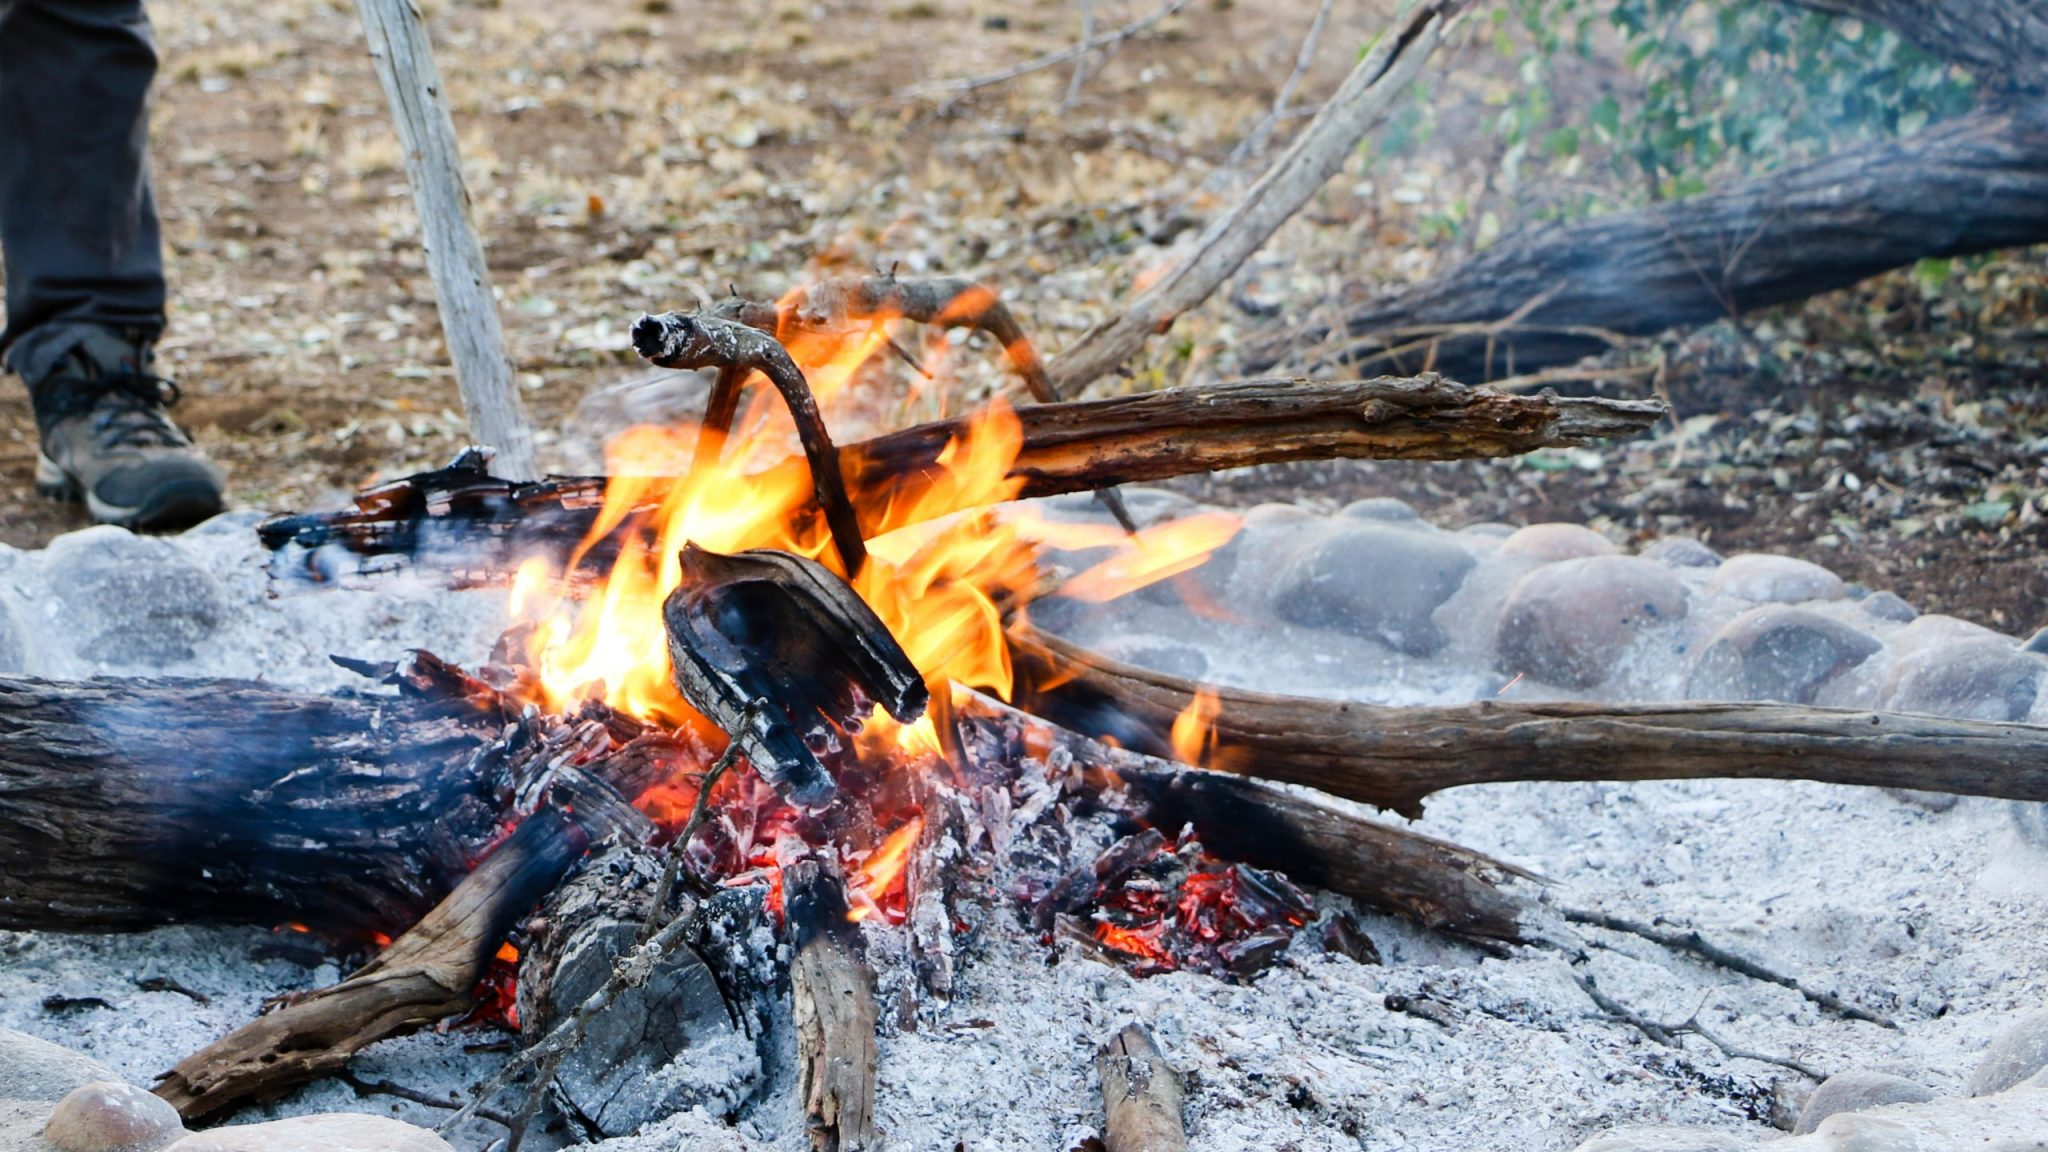 A campfire in Swaziland